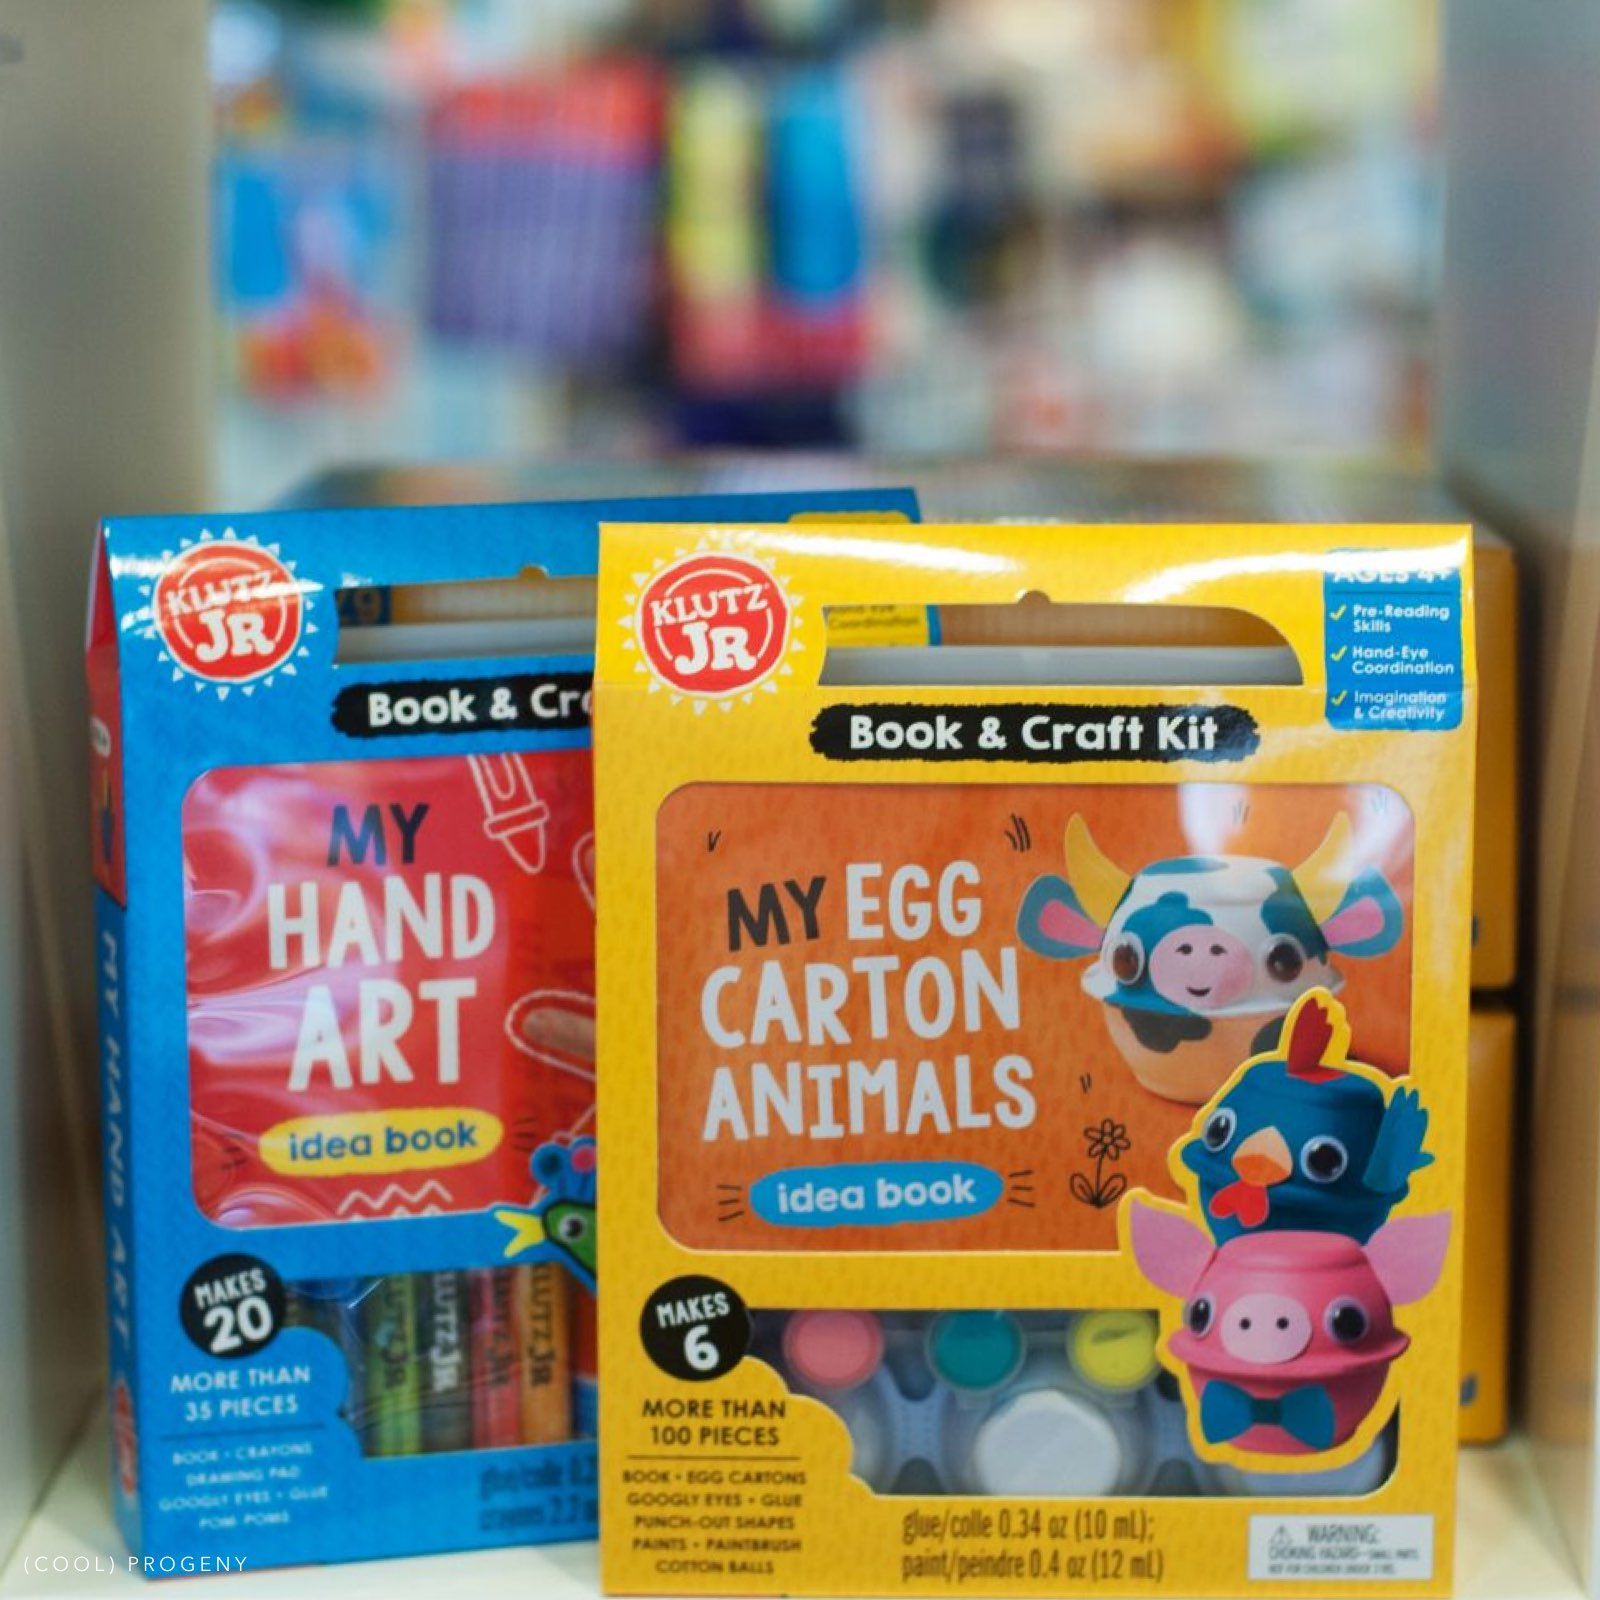 Shop Baltimore: Gift Ideas from Shananigans Toy Shop - (cool) progeny